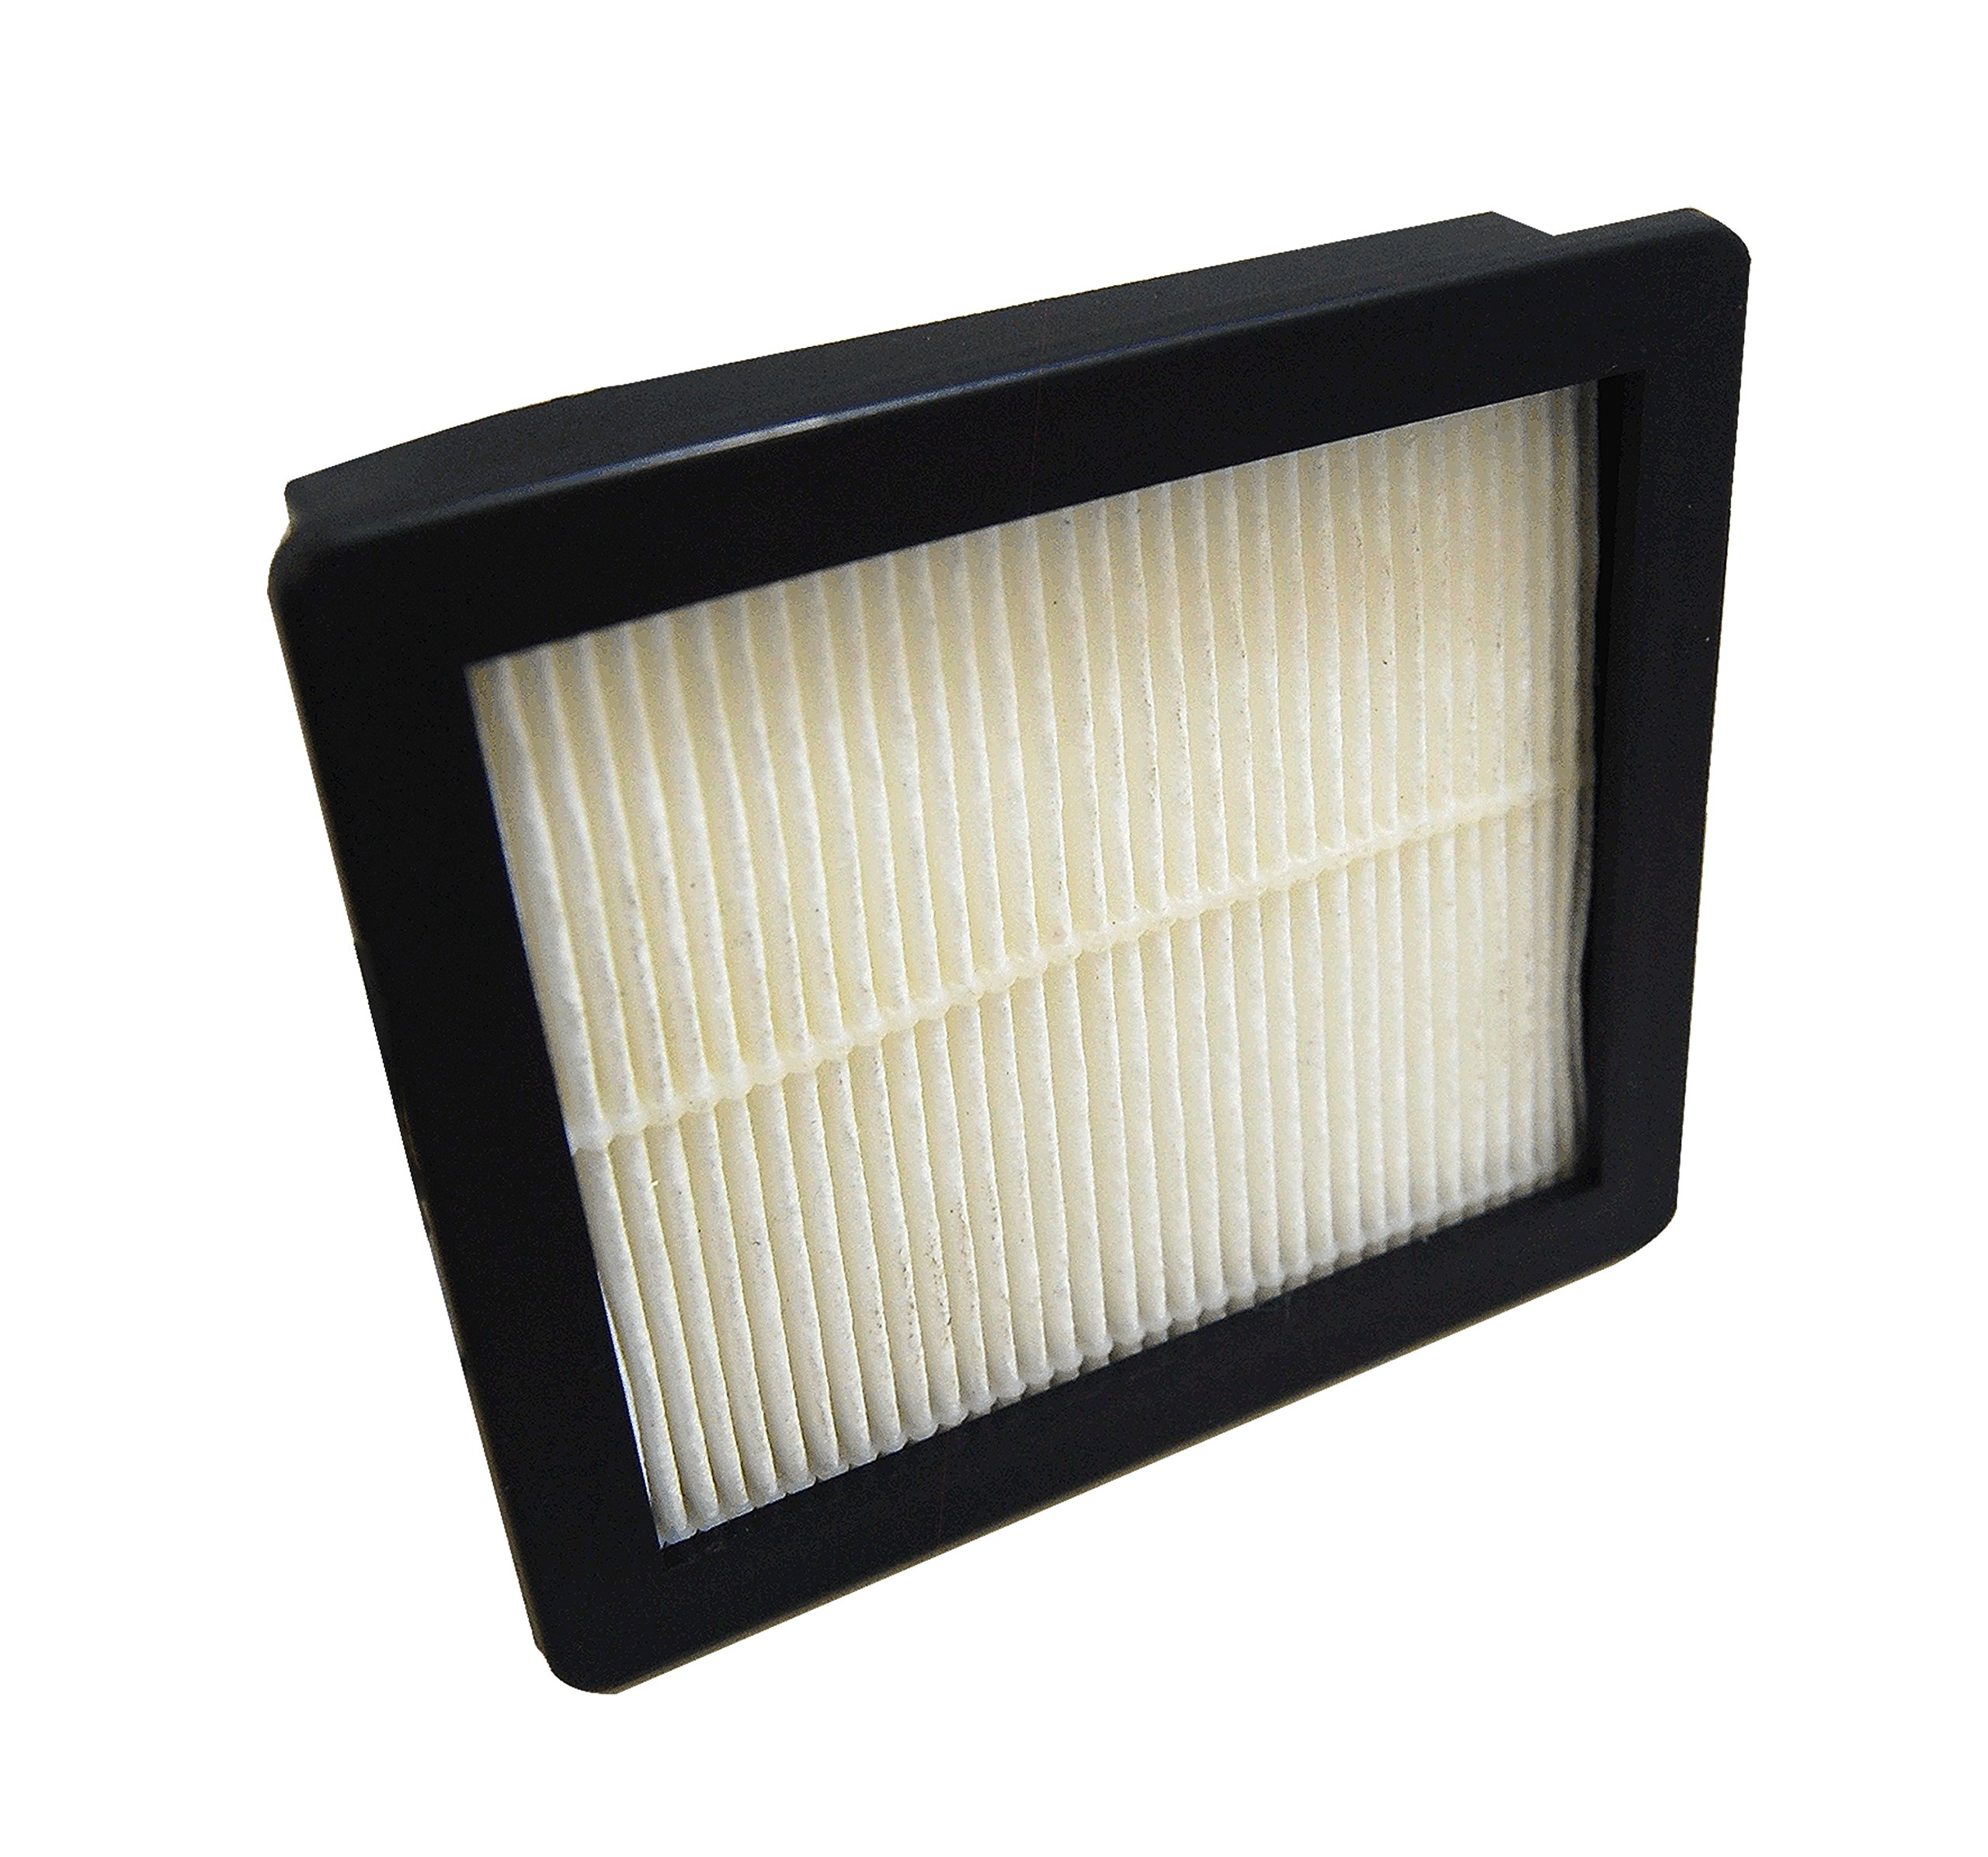 Janitized JAN-IVF446 Premium Replacement Commercial HEPA Filter for ProTeam Super Coach Pro 6 and 10 Qt, GoFree Pro and ProVac, OEM# 107315 (Pack of 20)